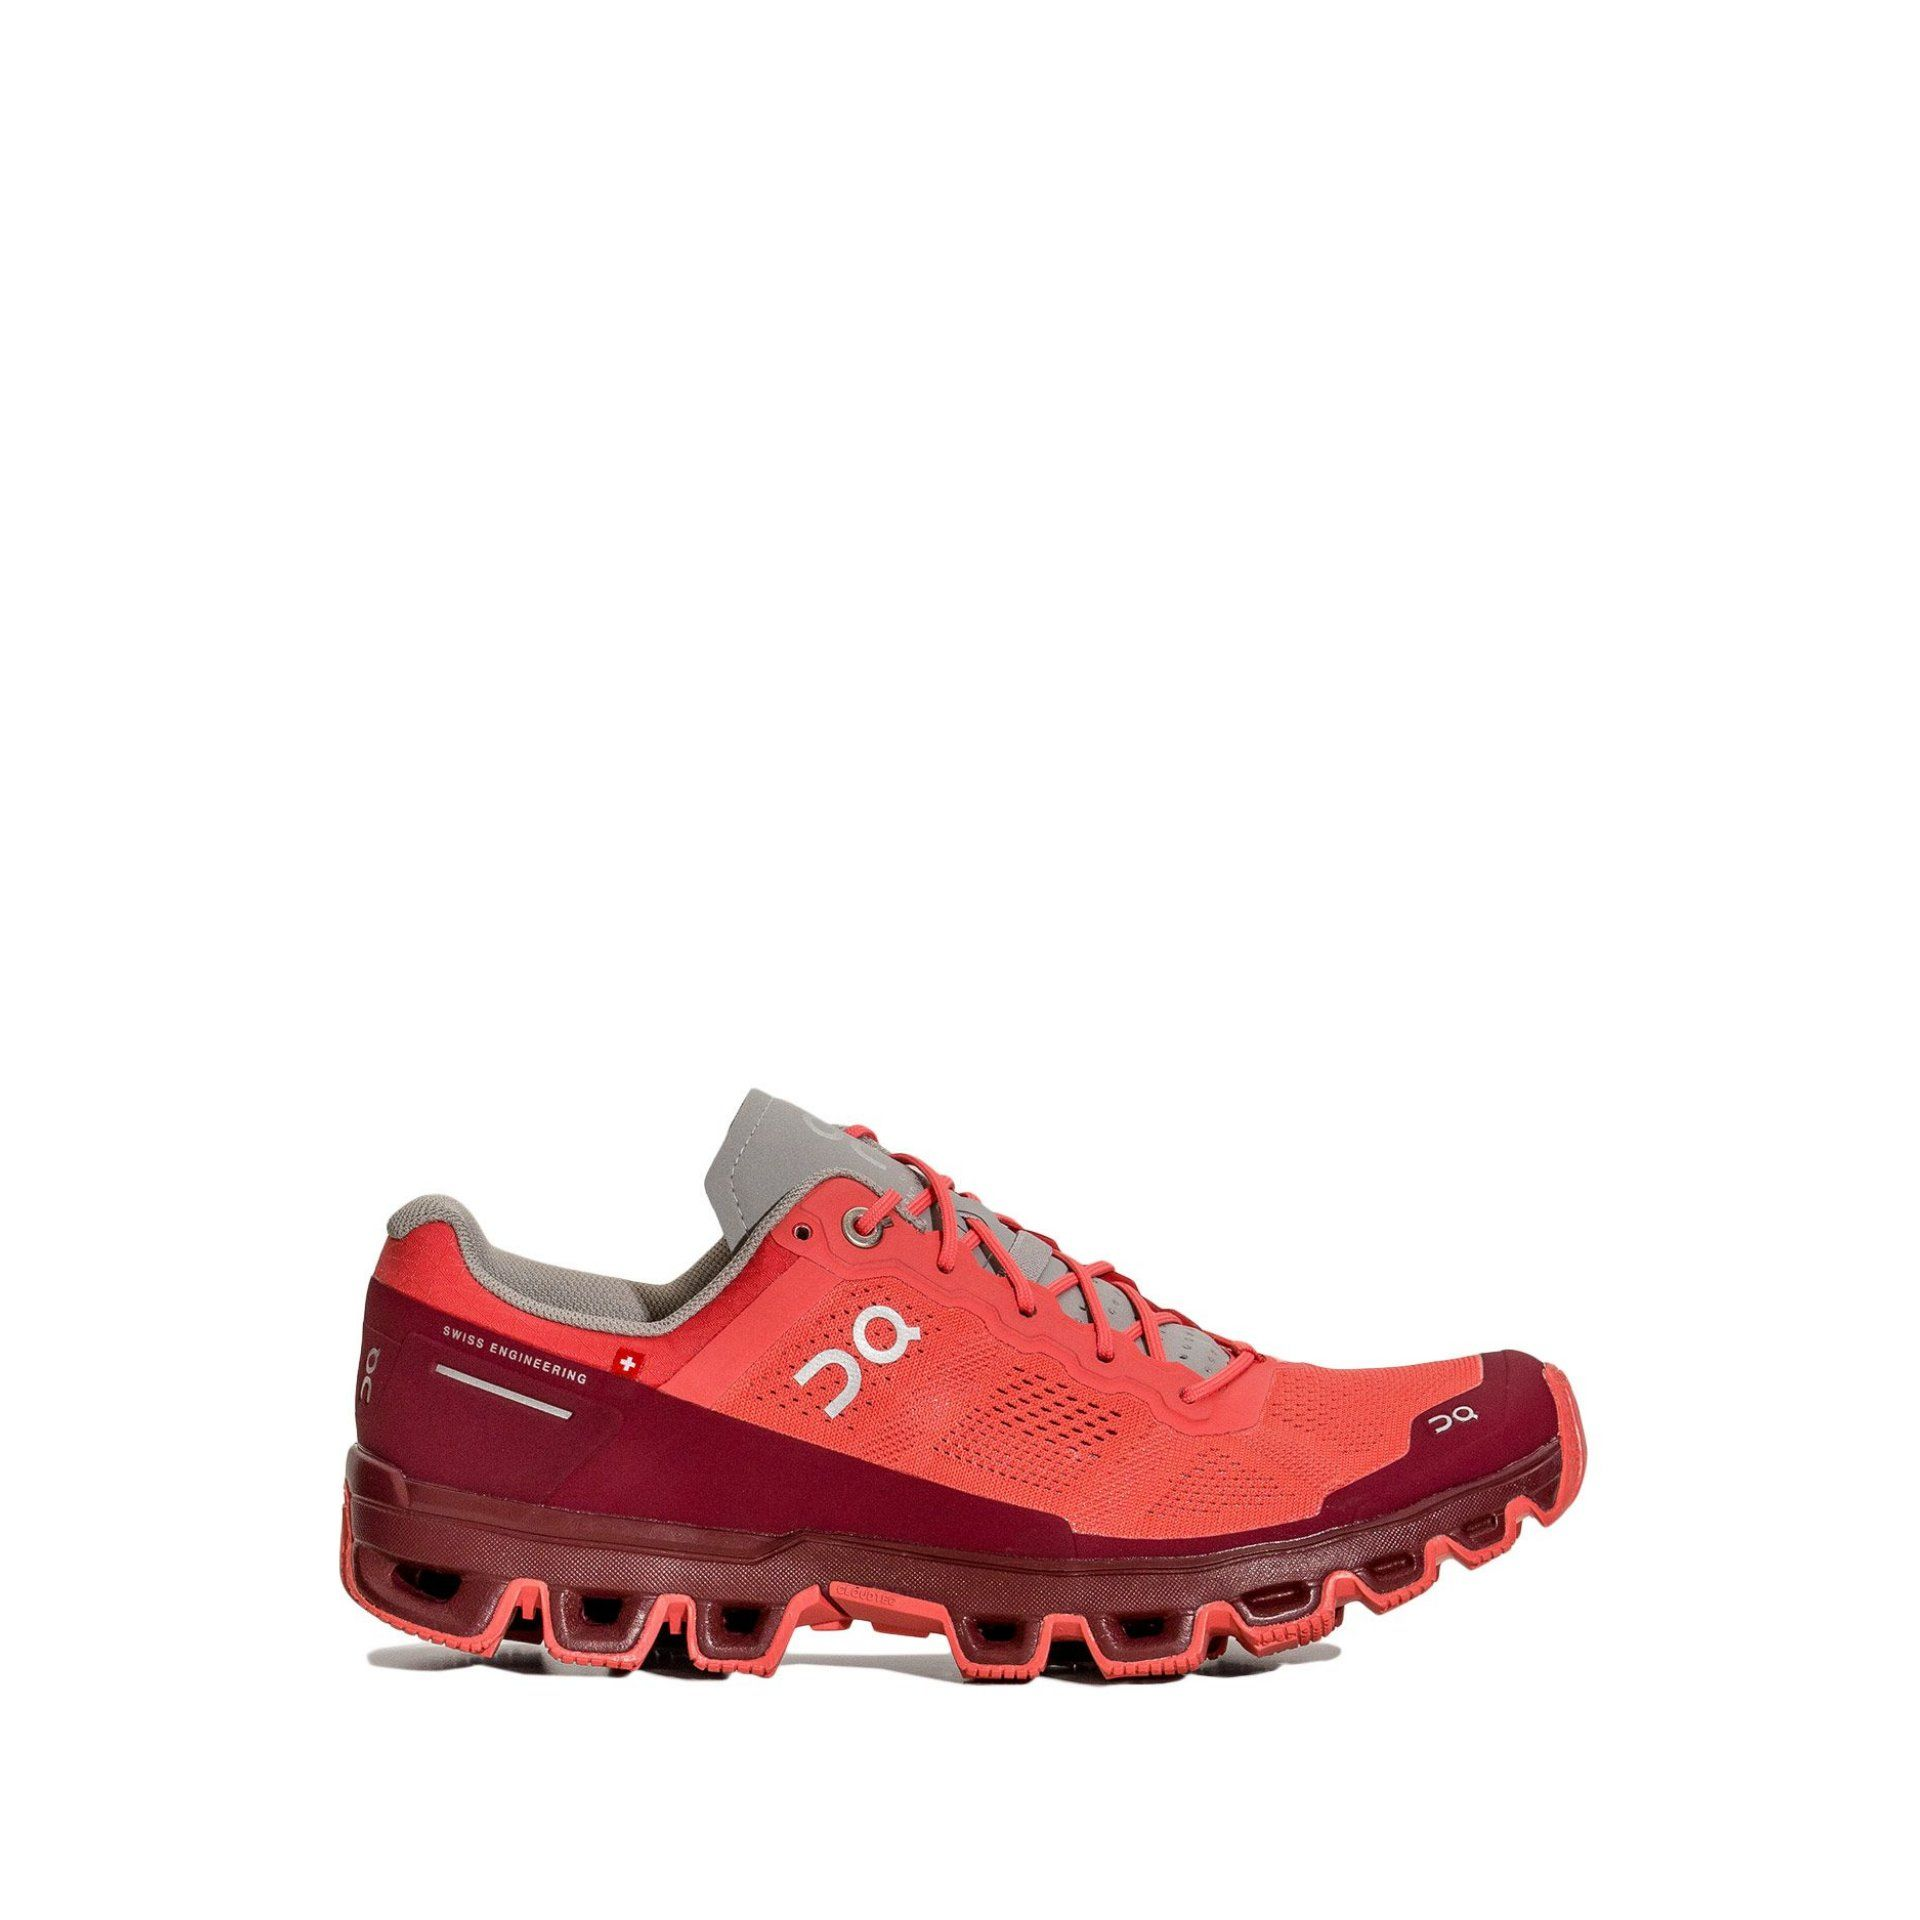 BUTY DO BIEGANIA ON RUNNING CLOUDVENTURE W CORAL|MULBERRY 1